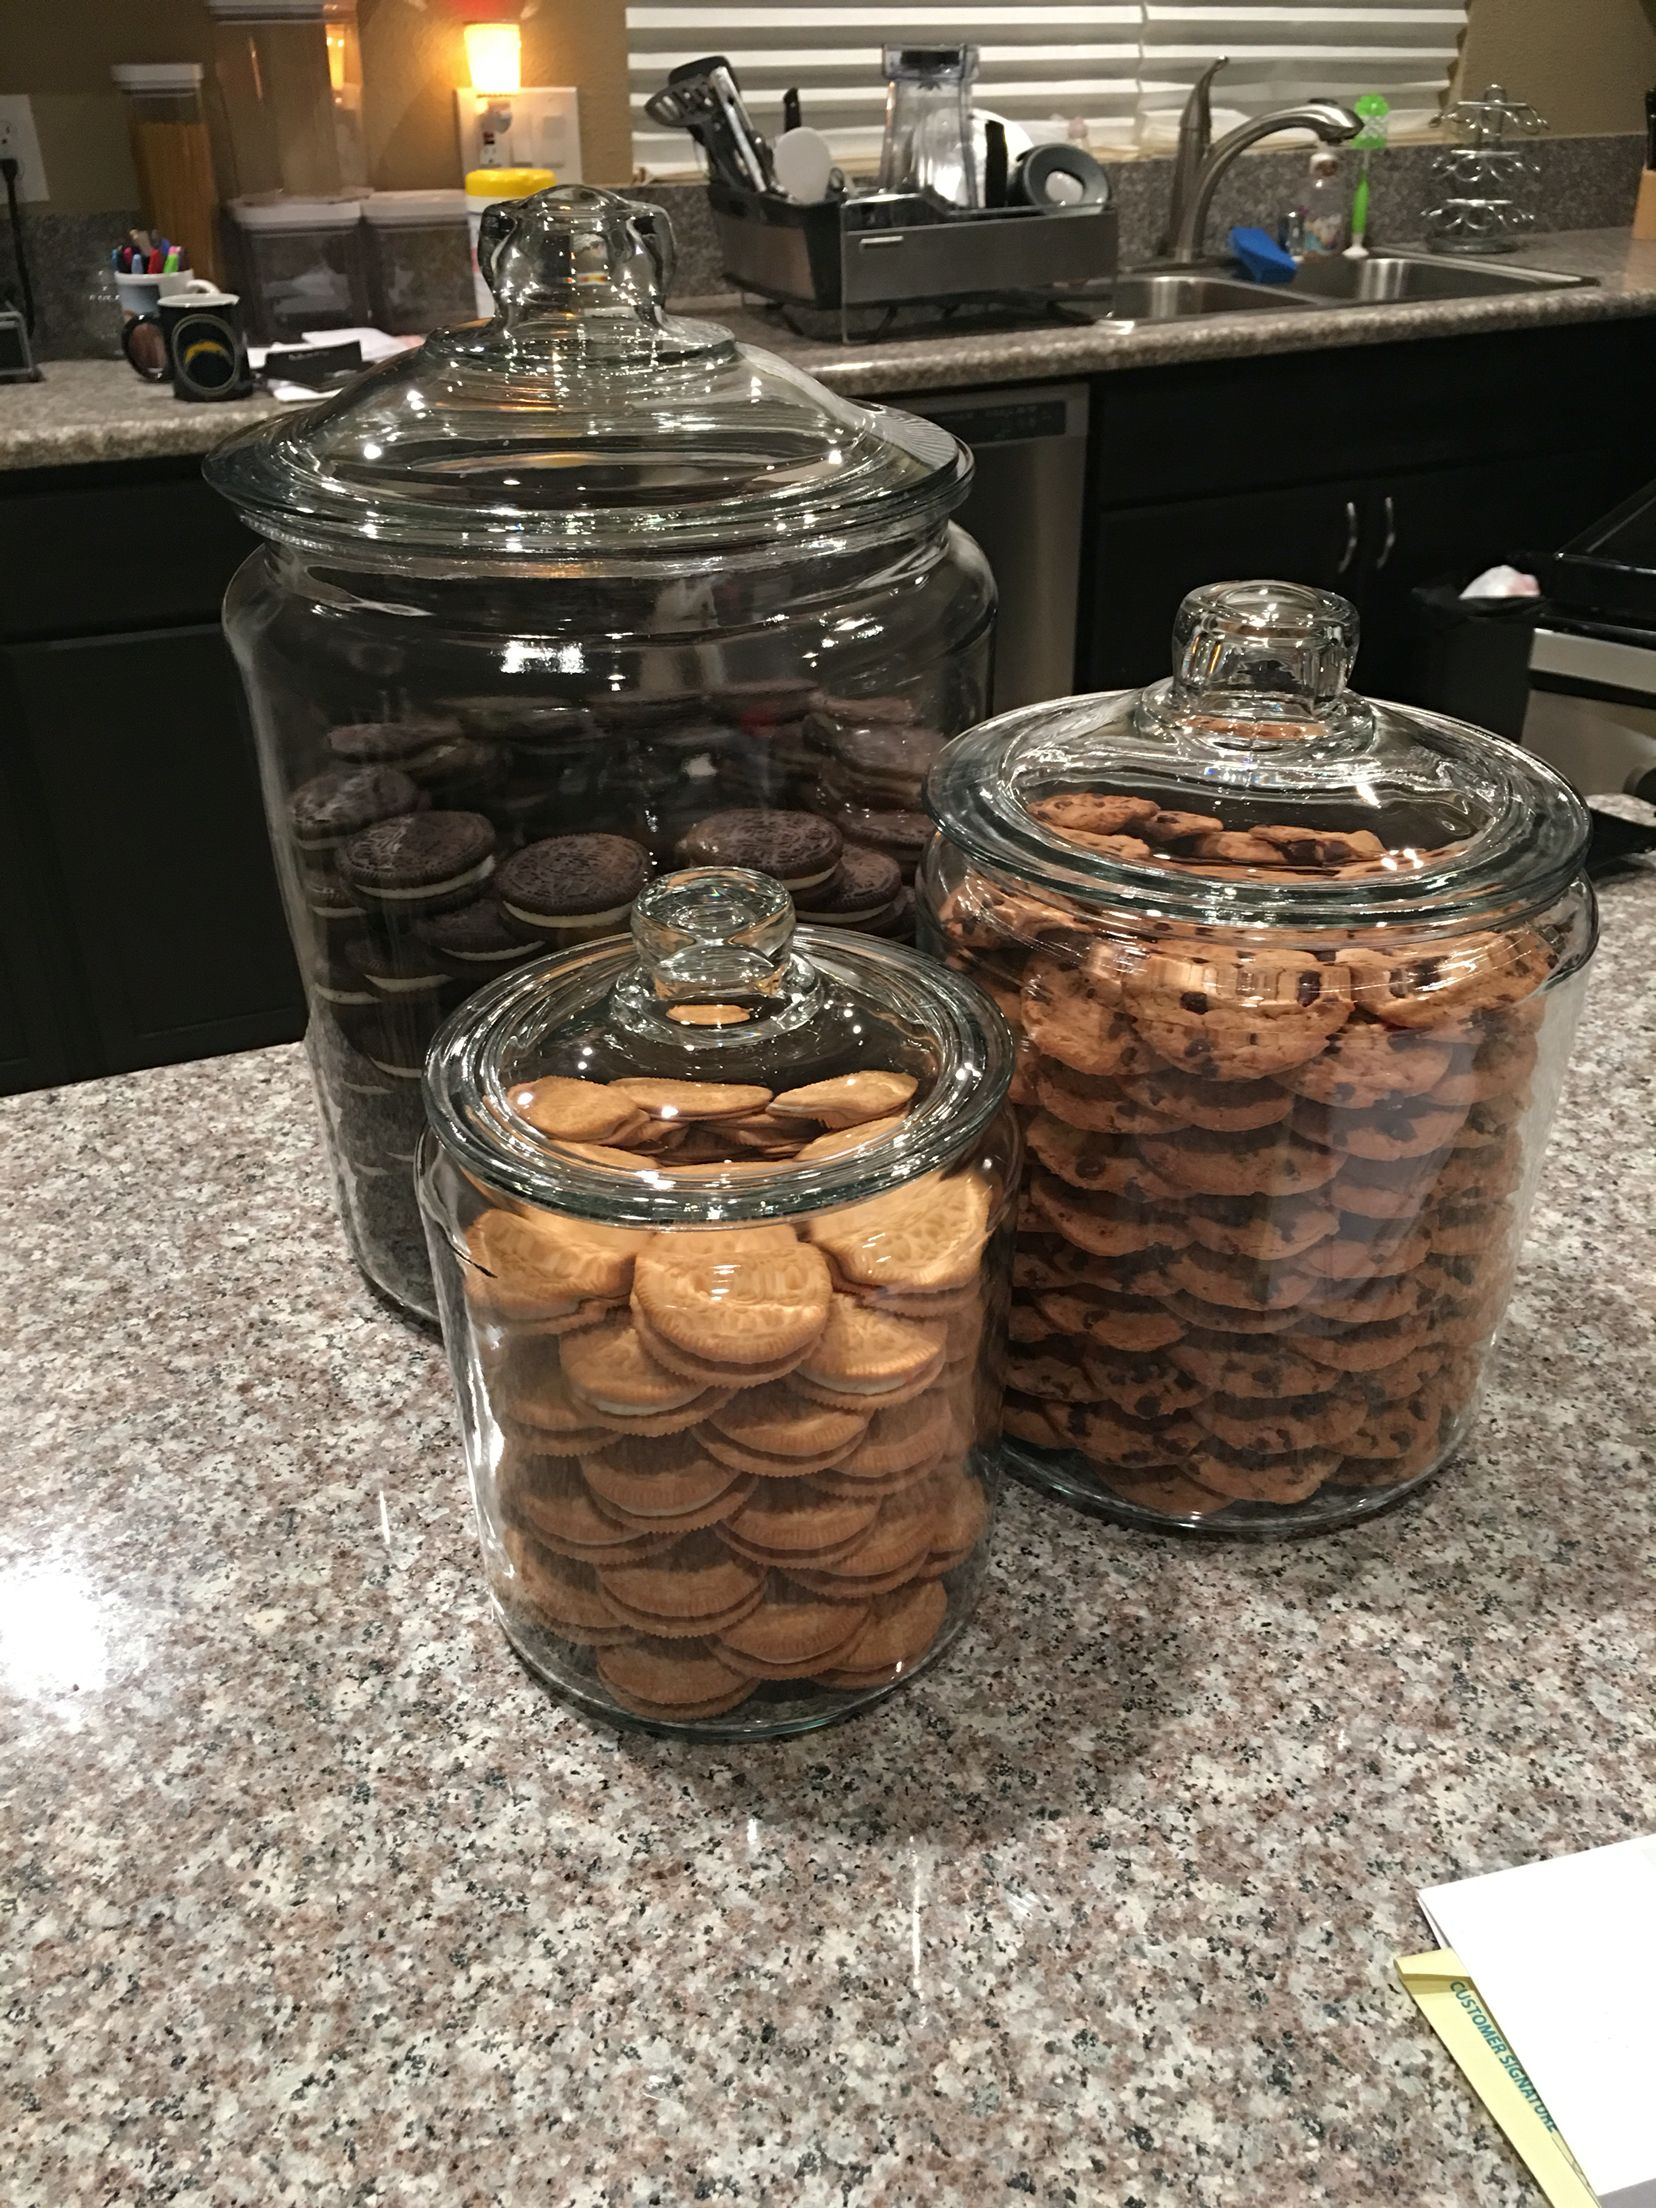 Khloe Kardashian Cookie Jar Delectable Pour La Façon De Placer Les Biscuits  Home  Pinterest  Cat Inspiration